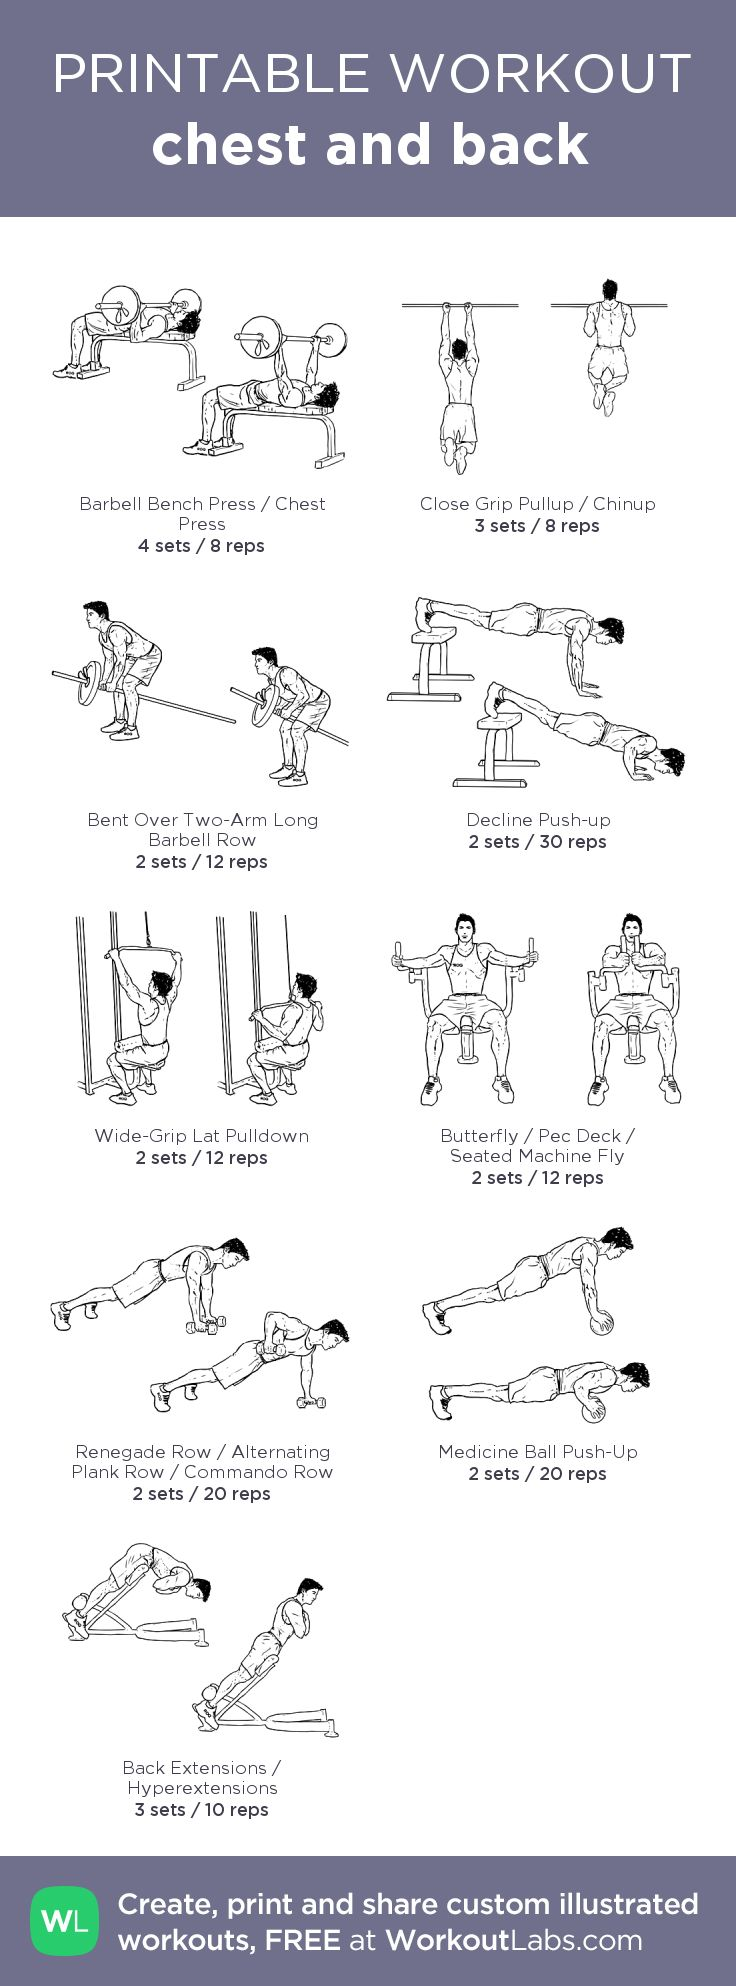 chest and back:my visual workout created at WorkoutLabs.com • Click through to customize and download as a FREE PDF! #customworkout